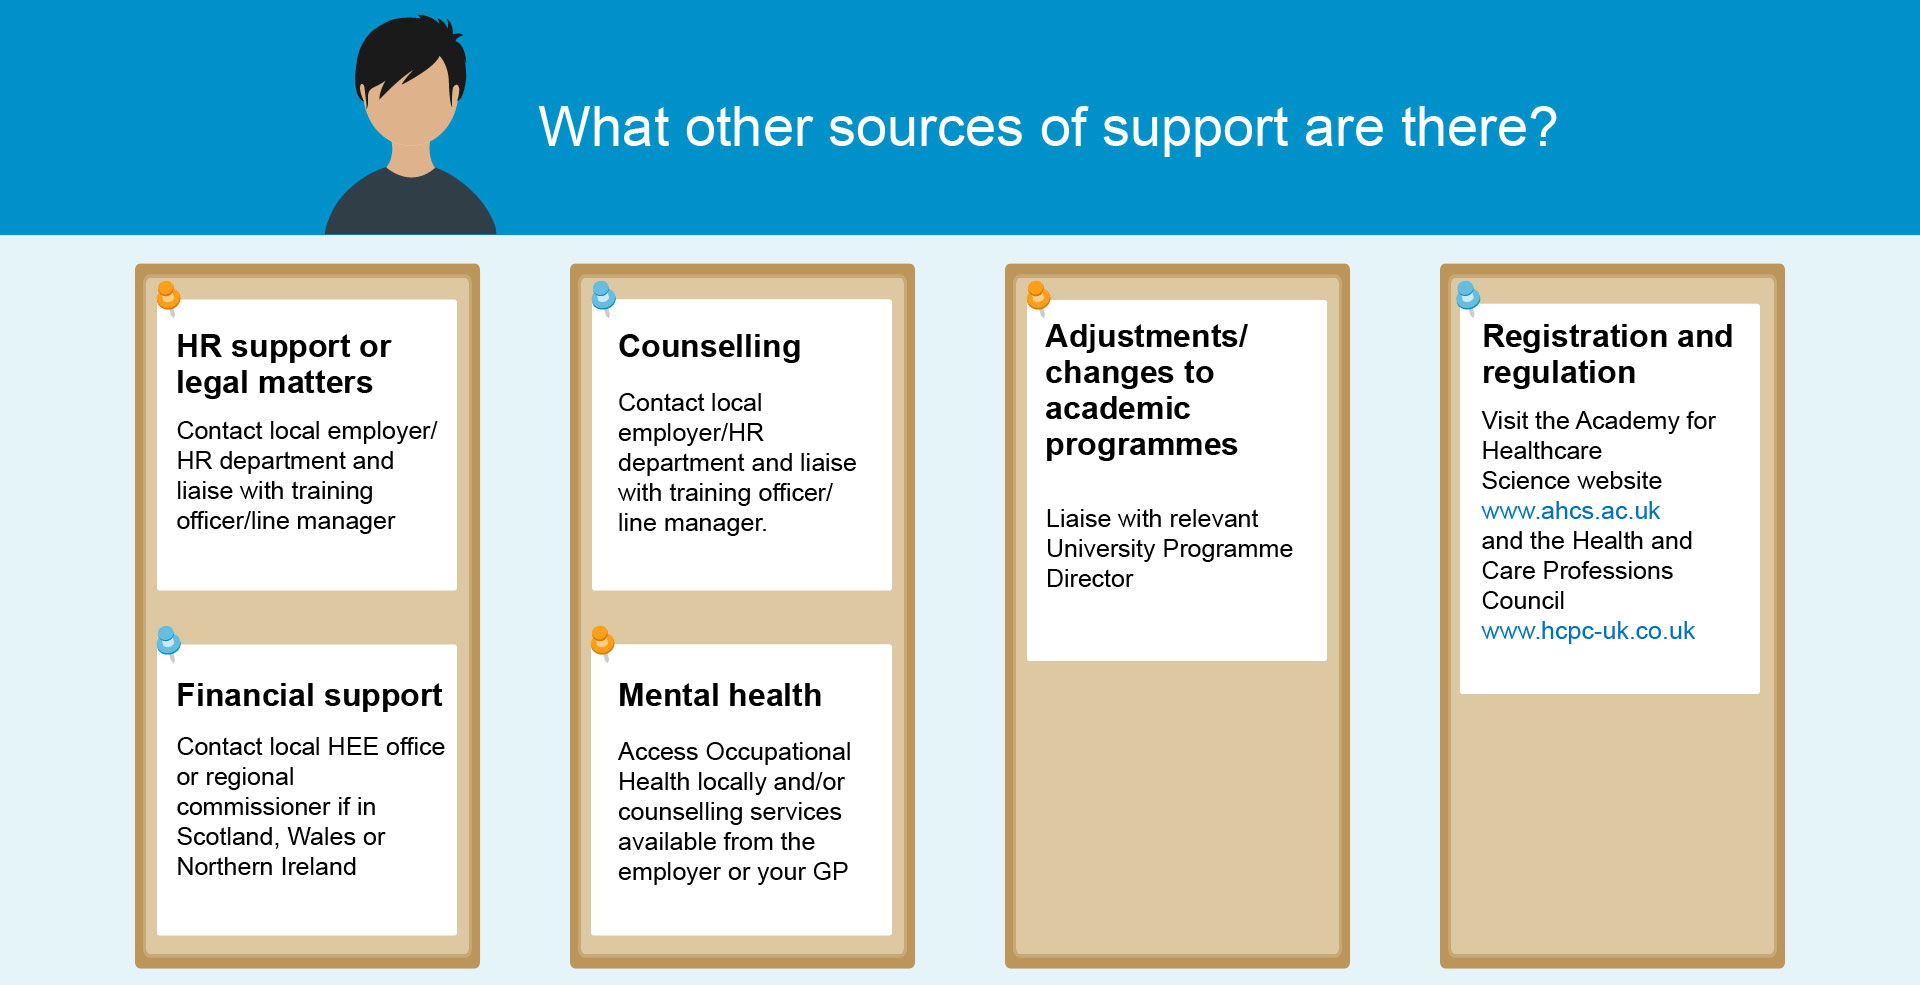 Graphic showing other sources of support for trainees outside of the School